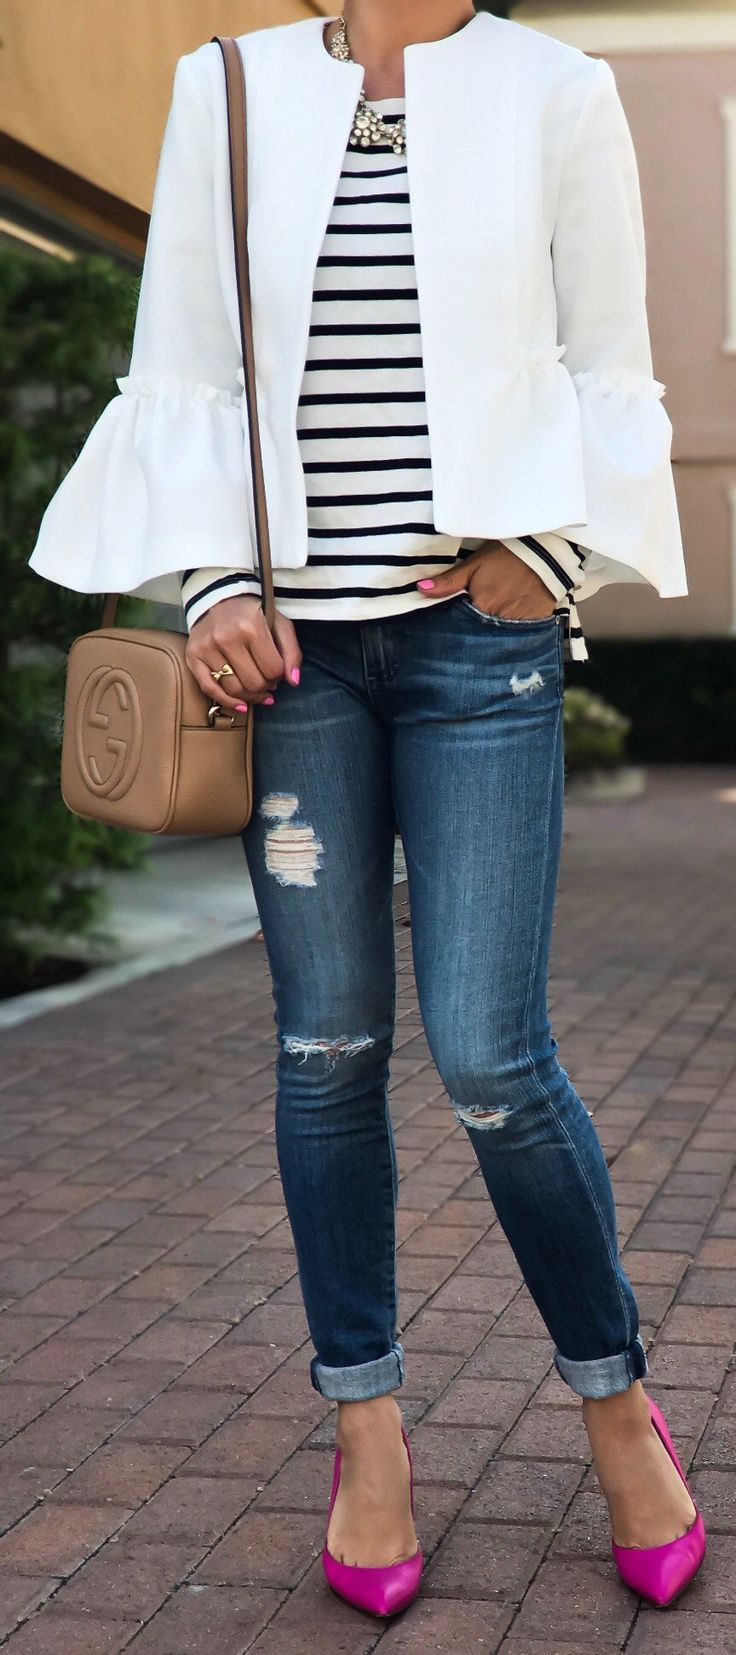 #fashion #outfits  White Jacket & White Striped Top & Ripped Skinny Jeans & Pink Pumps